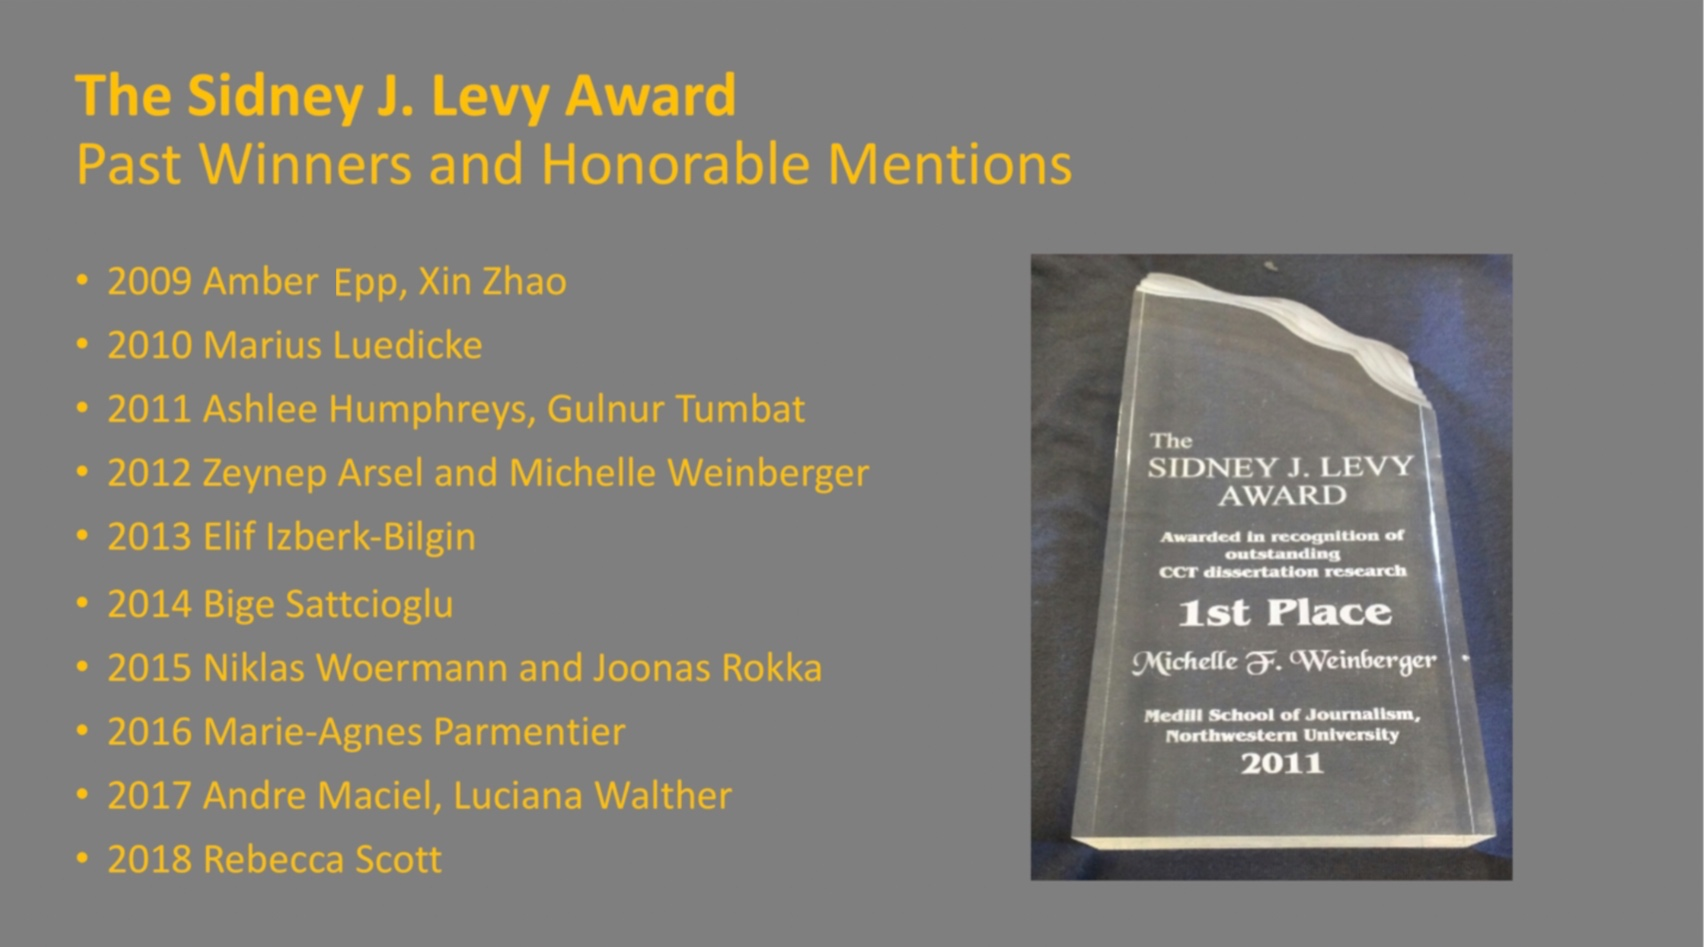 Past Winners and Honorable Mentions of the Sidney J. Levy Award